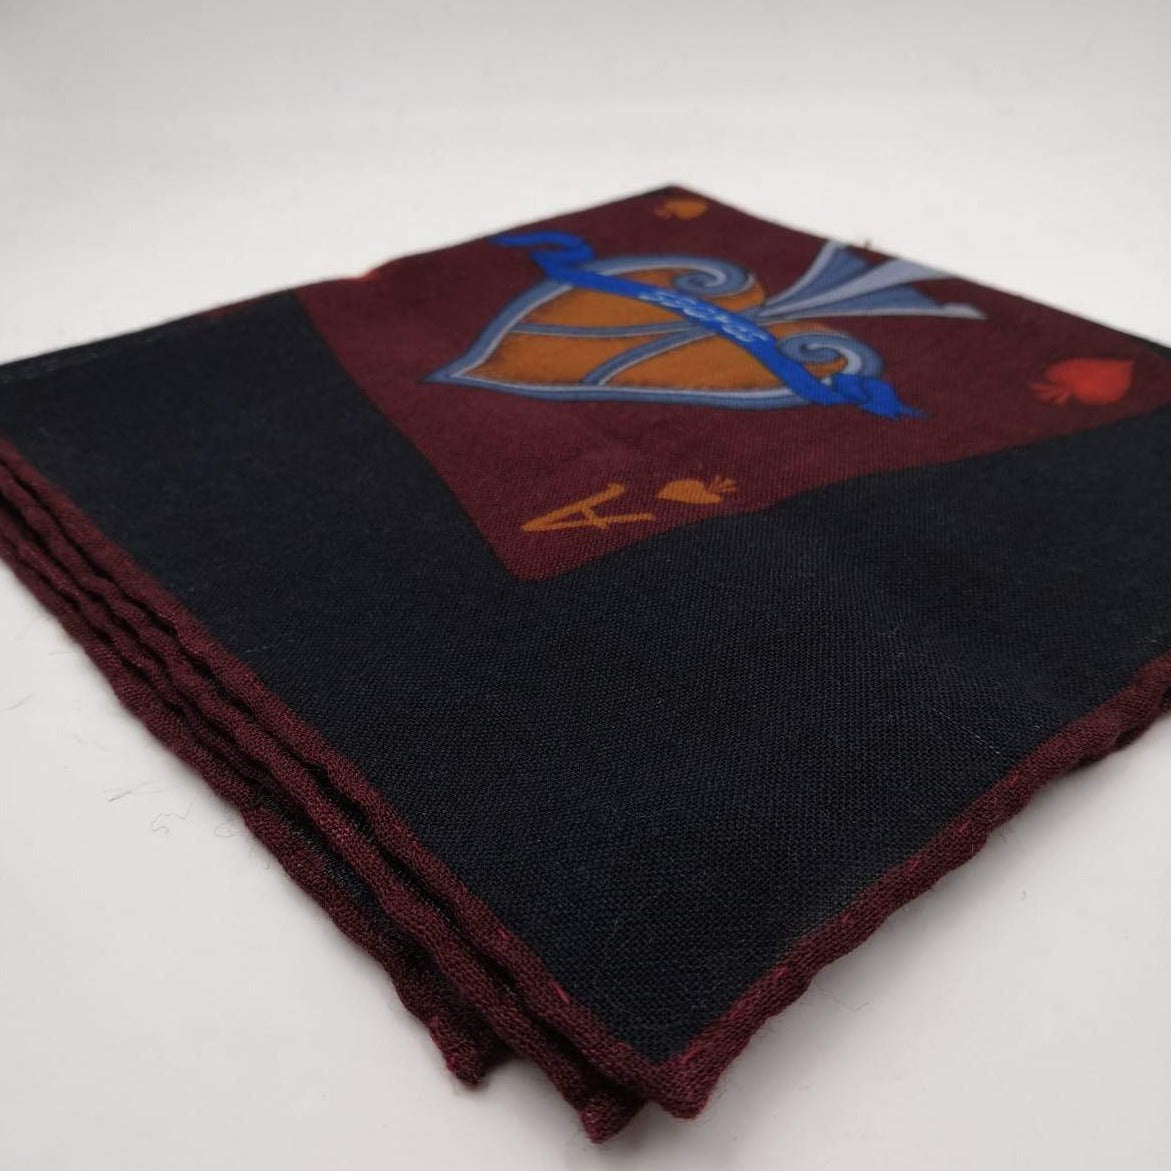 Cruciani & Bella 100% Wool Hand-rolled  Dark Blue and Burgundy Playing Card  Motif  Pocket Square Handmade in Italy 39 cm X 39cm #2623